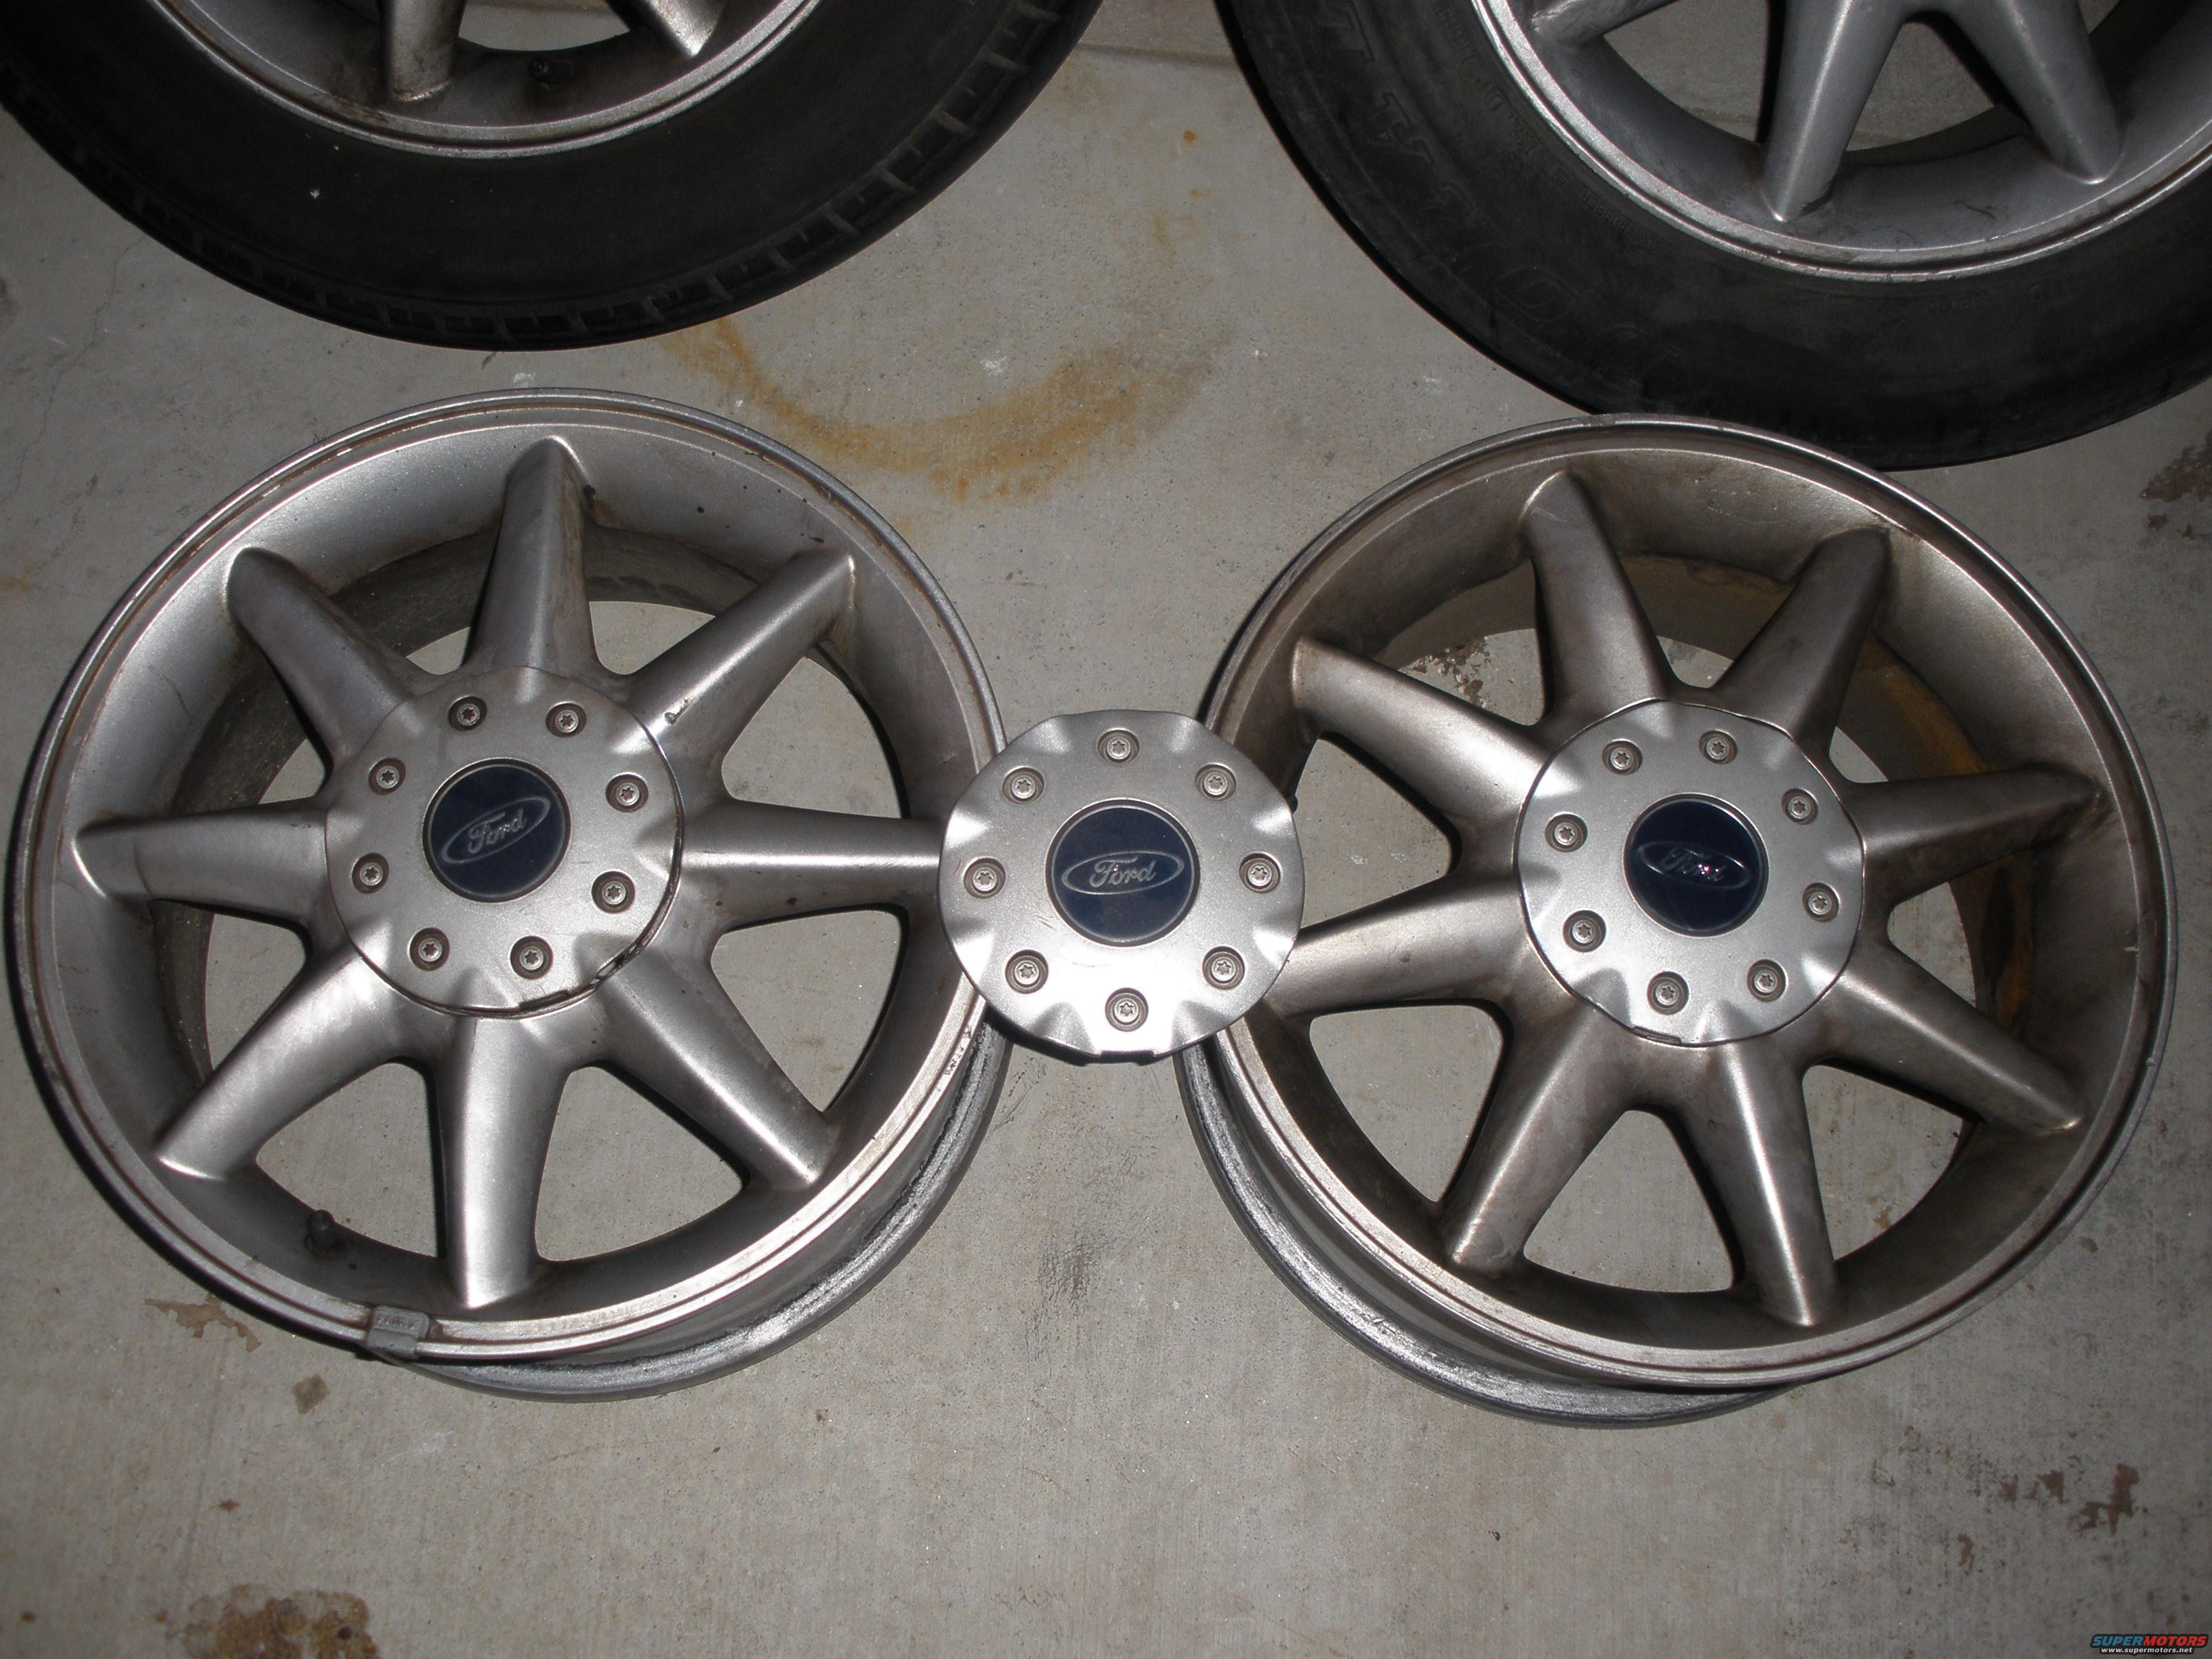 1998 Ford Contour Rims Picture